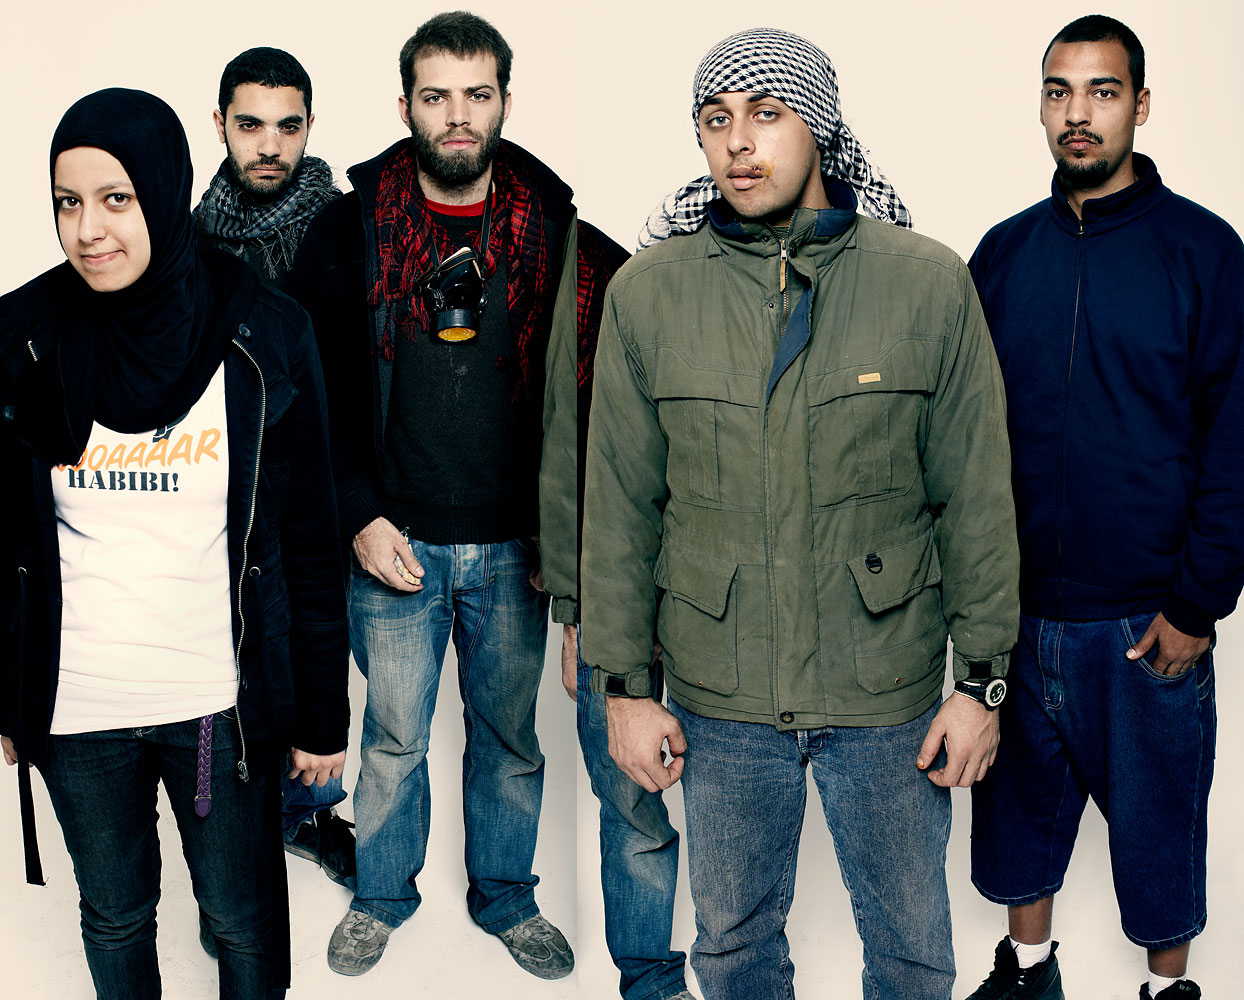 Ali Mustafa, far right, stands for a portrait in Cairo in November 2011 as TIME photographed protesters, who it named Person of the Year